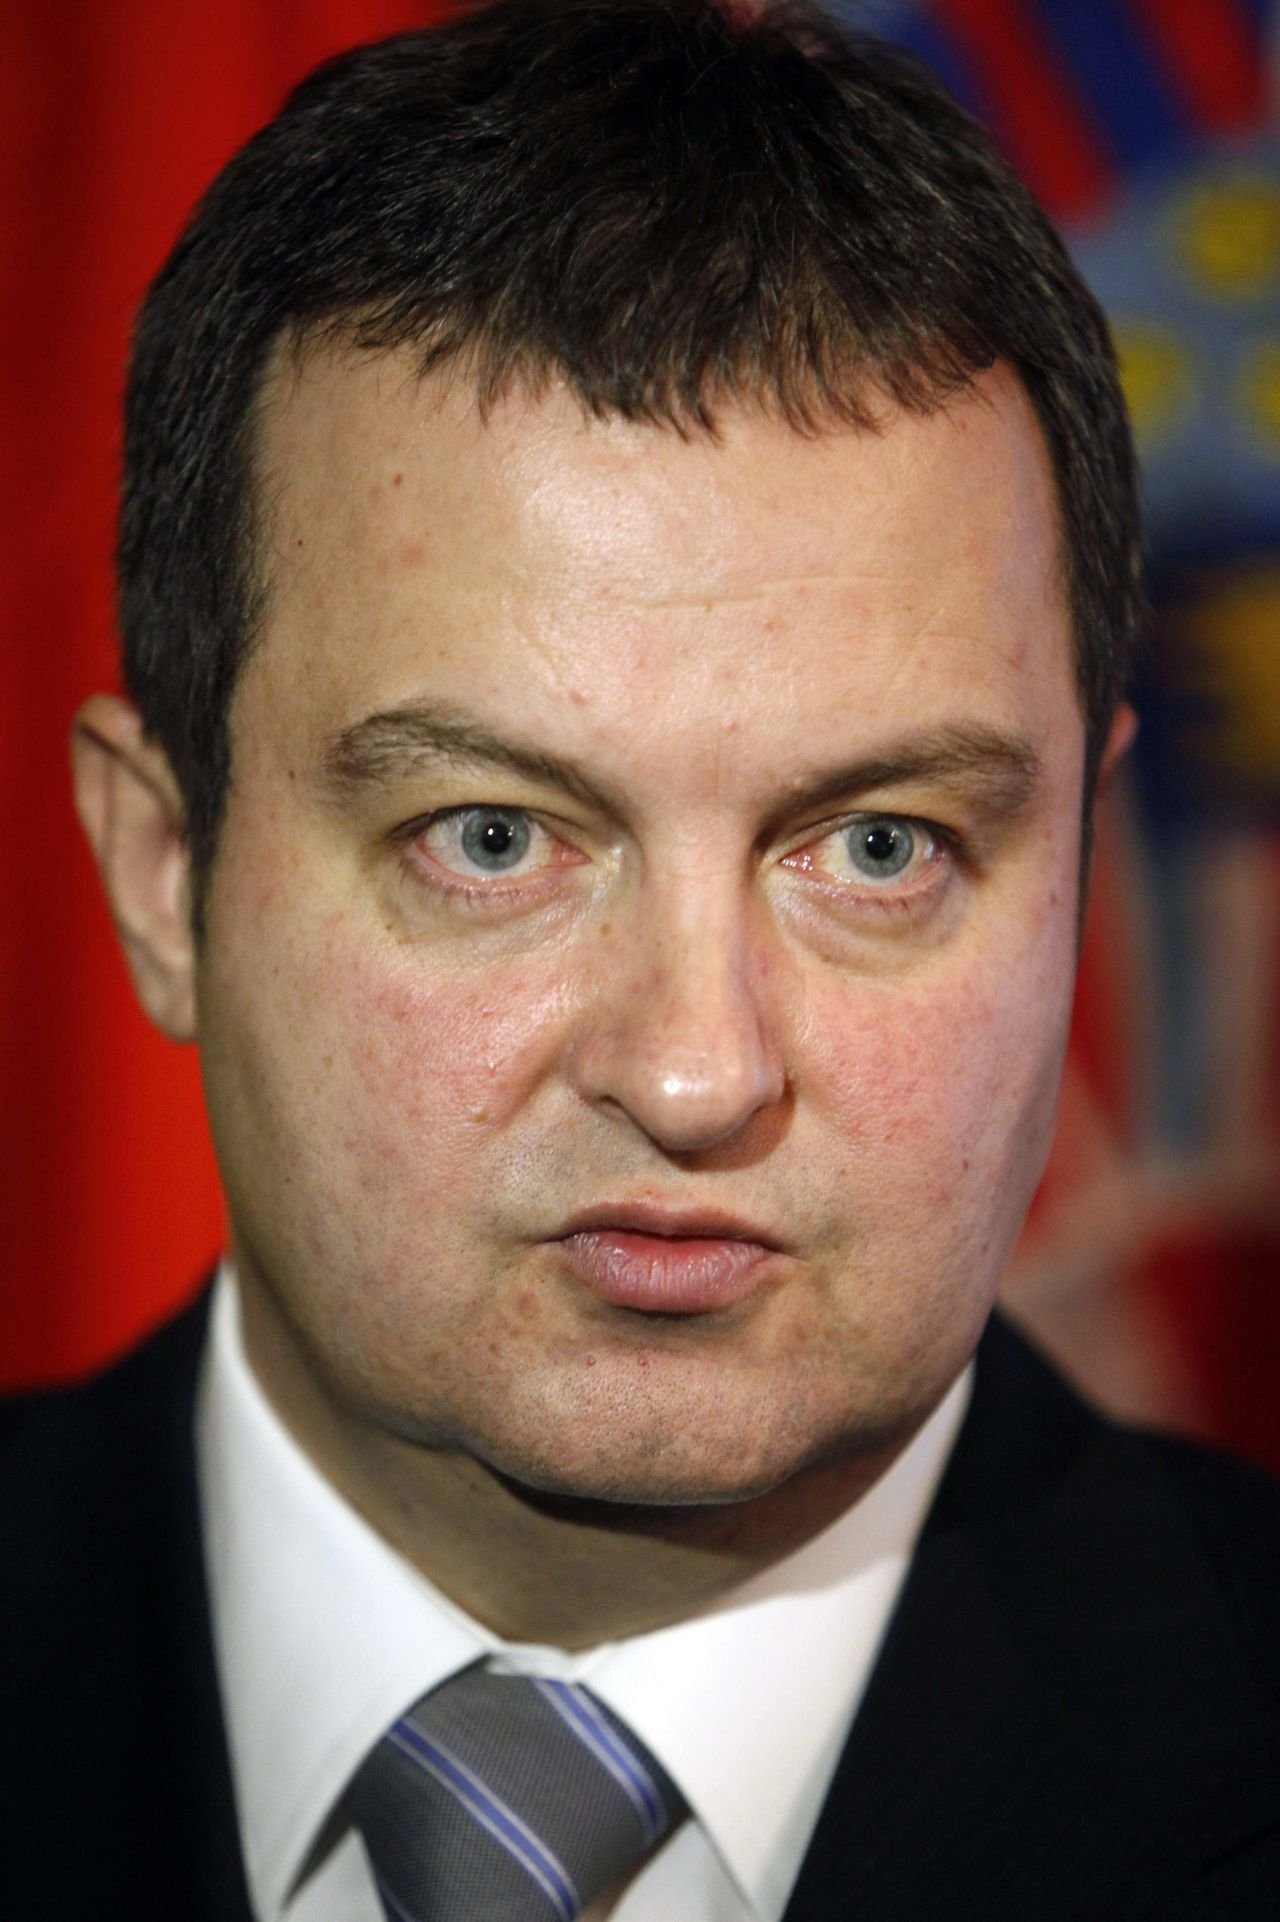 Serbia's Interior Minister Ivica Dacic speaks during an interview with Reuters after a regional conference in Zagreb in this February 12, 2010 file photo. Serbian Socialist leader Dacic received a mandate on June 28, 2012 to form a coalition government with President Tomislav Nikolic's nationalist Progressive party, a move that may raise concerns about Belgrade's bid for European Union membership. REUTERS/Nikola Solic/Files (CROATIA - Tags: HEADSHOT POLITICS)